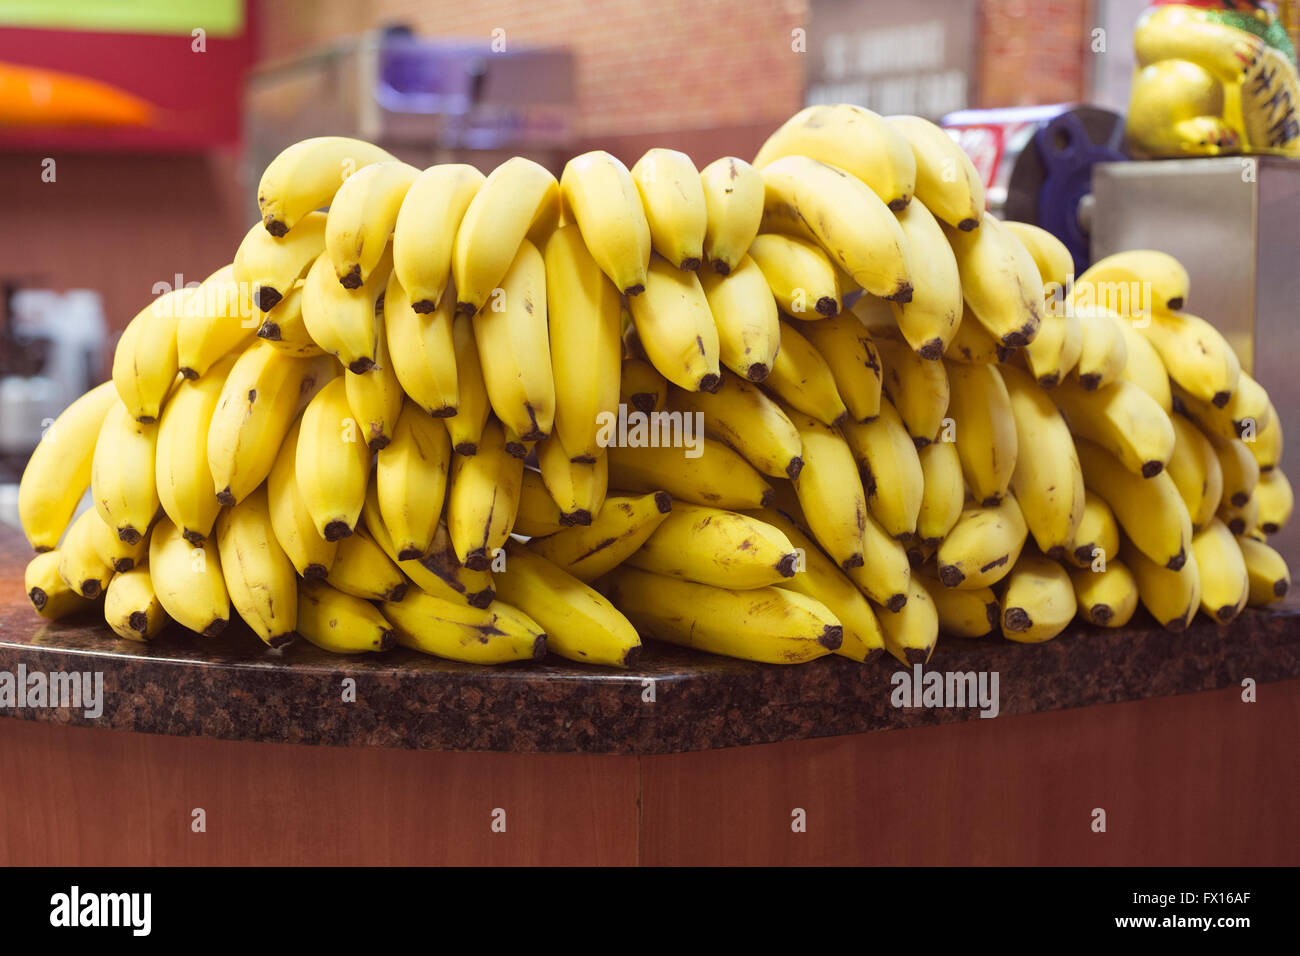 Bananas for sale at St Lawrence Market - Stock Image